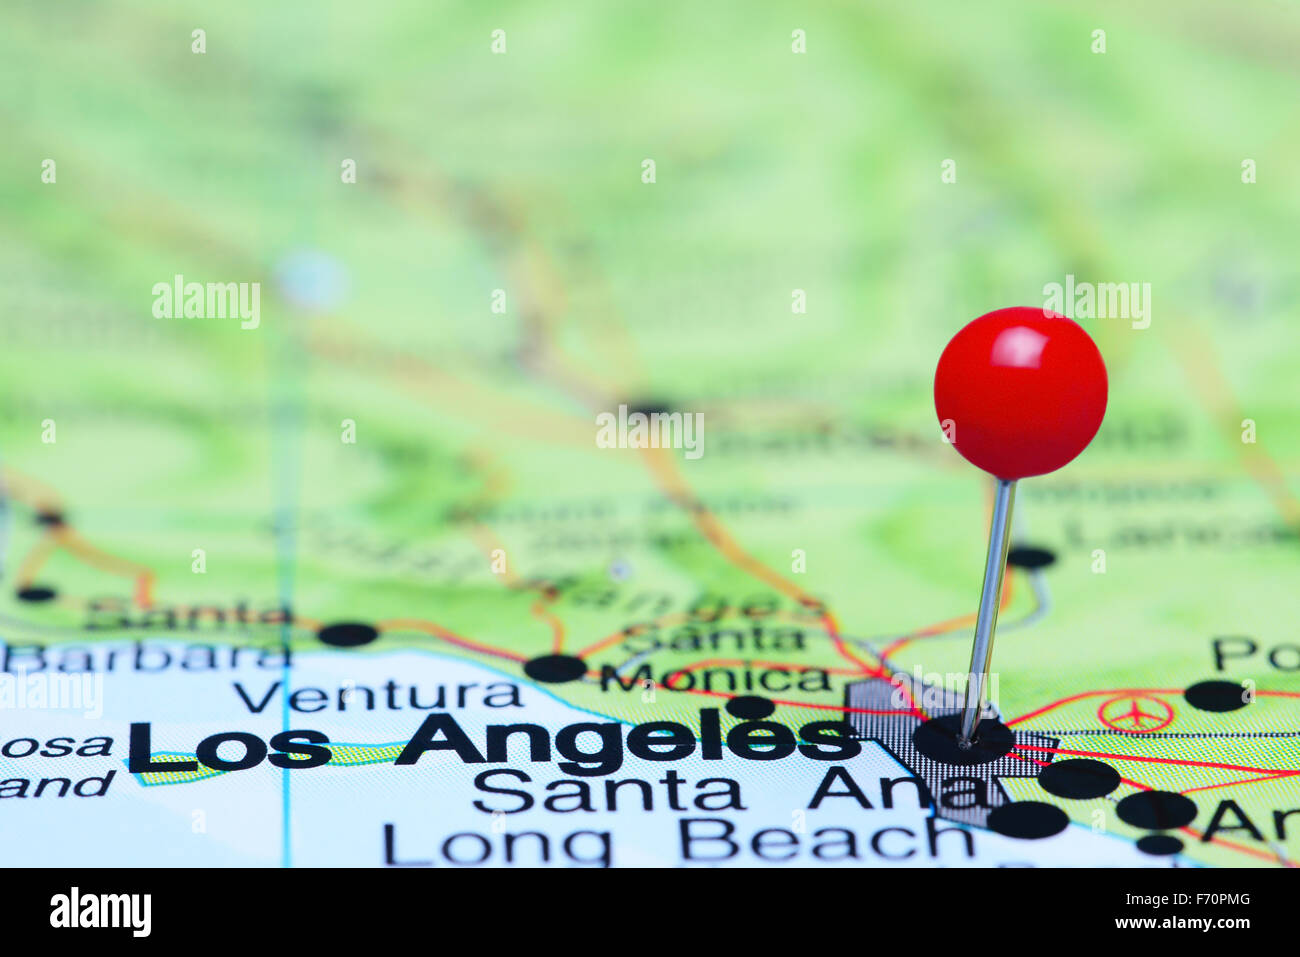 los angeles pinned on a map of usa